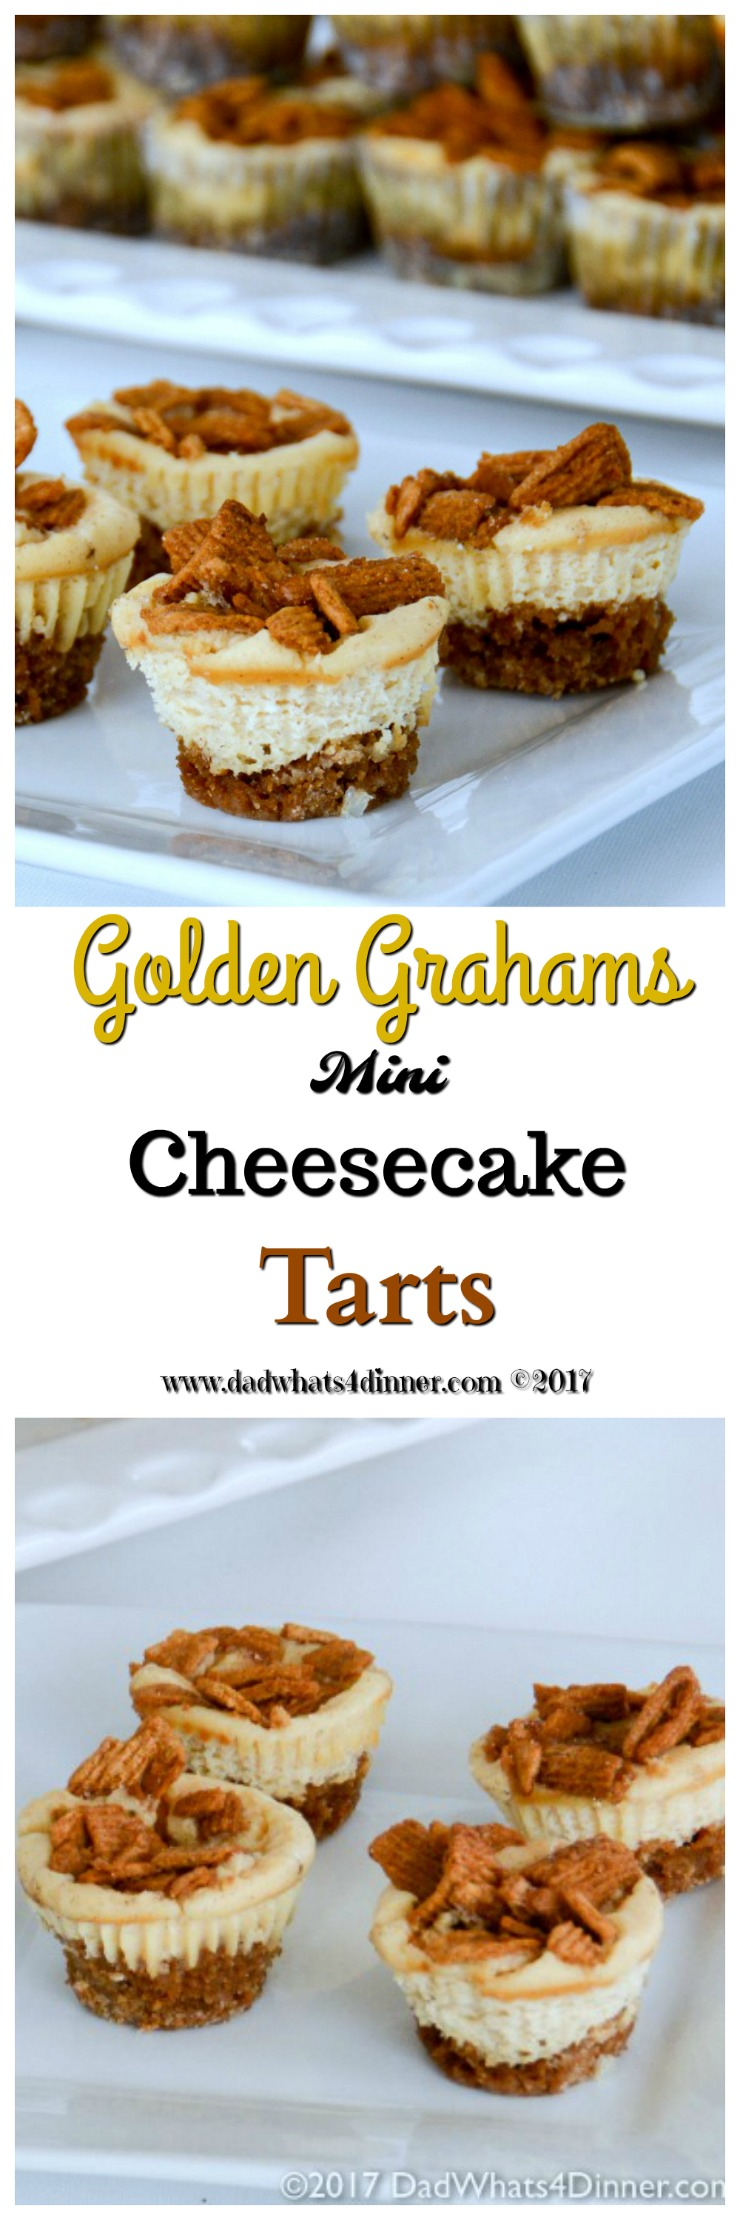 Golden Grahams Mini Cheesecake Tarts is a simple treat the kids can make Dad for Fathers Day. Mini cheesecake tarts made with dads favorite cereal. www.dadwhats4dinner.com #FathersDay #dessert #cheesecake #ad